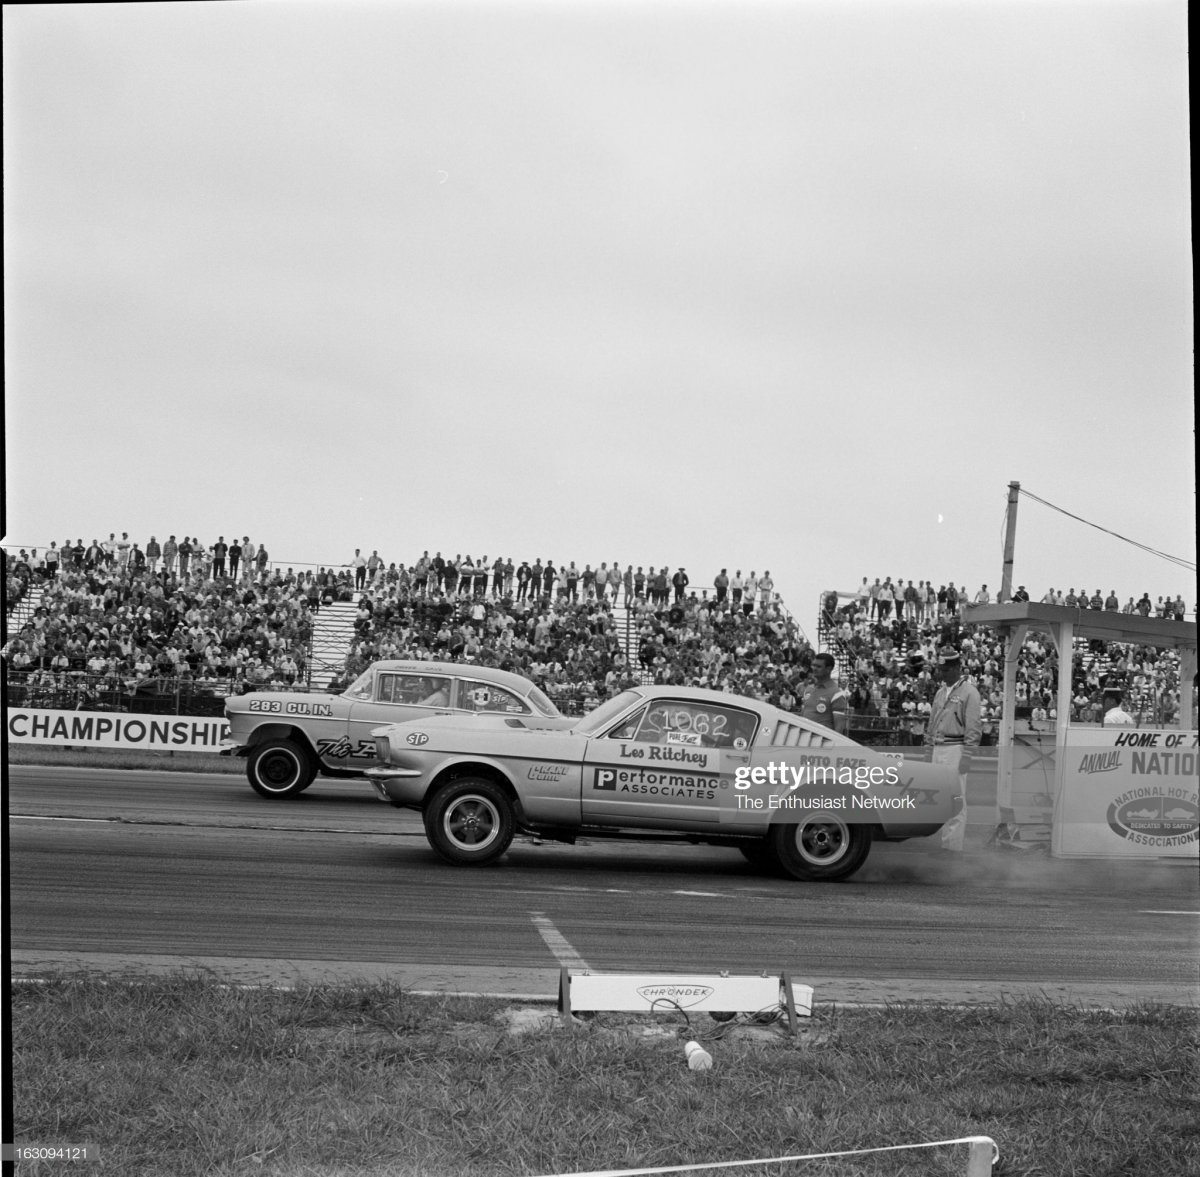 65 nat  Les Richey, in the 1965 Ford Mustang fa.jpg